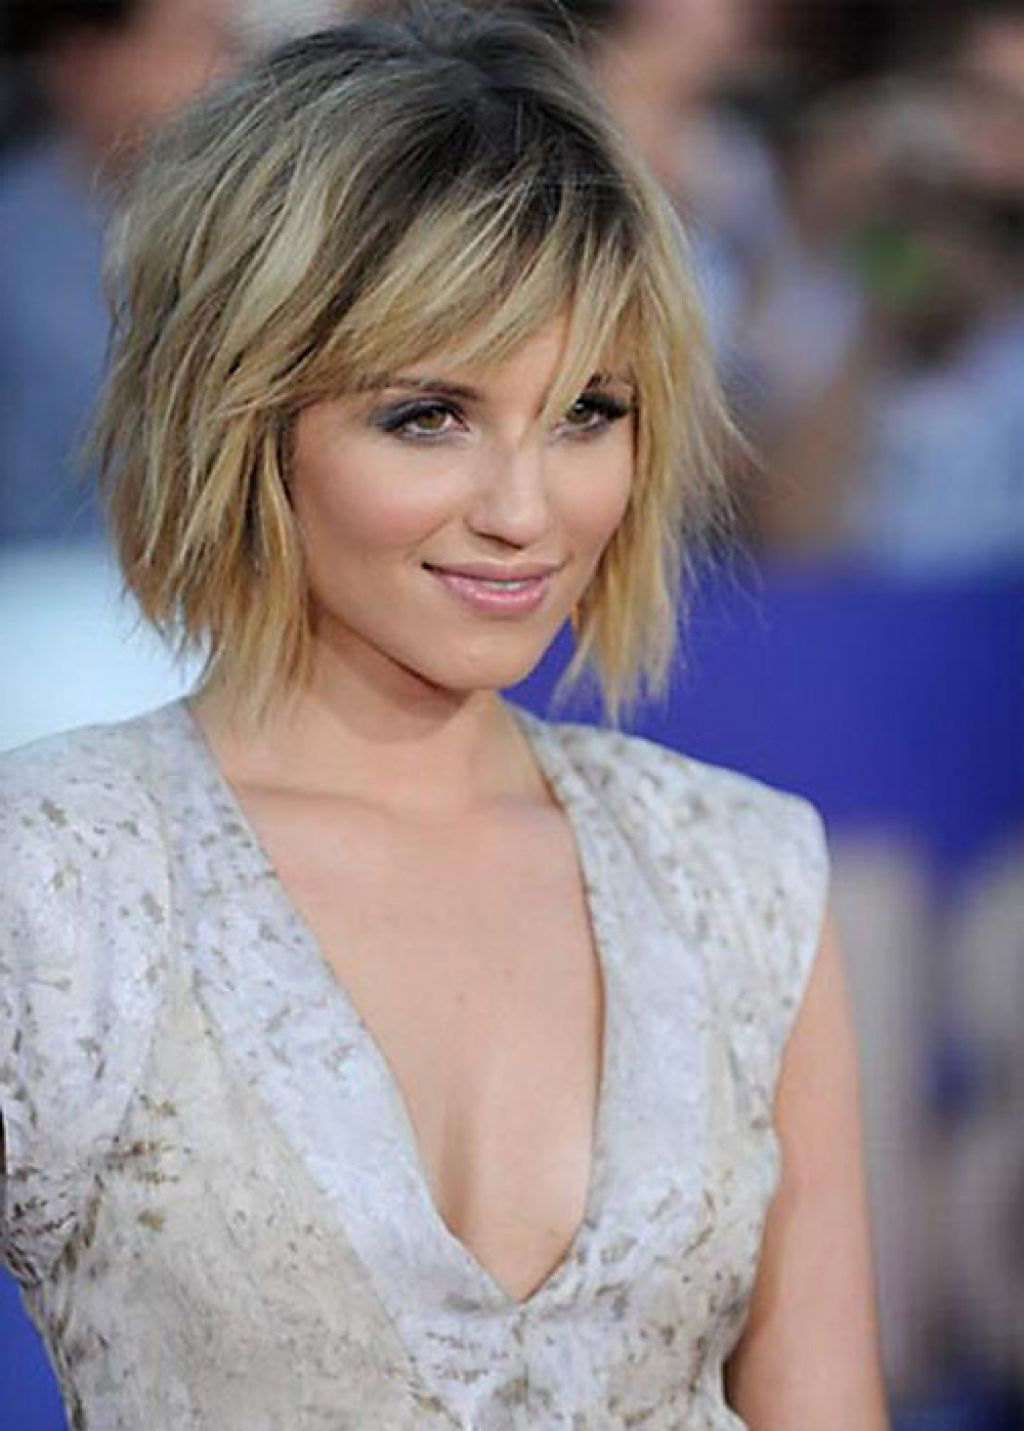 Layered Haircuts | The Ultimate Layered hairstyles Guide